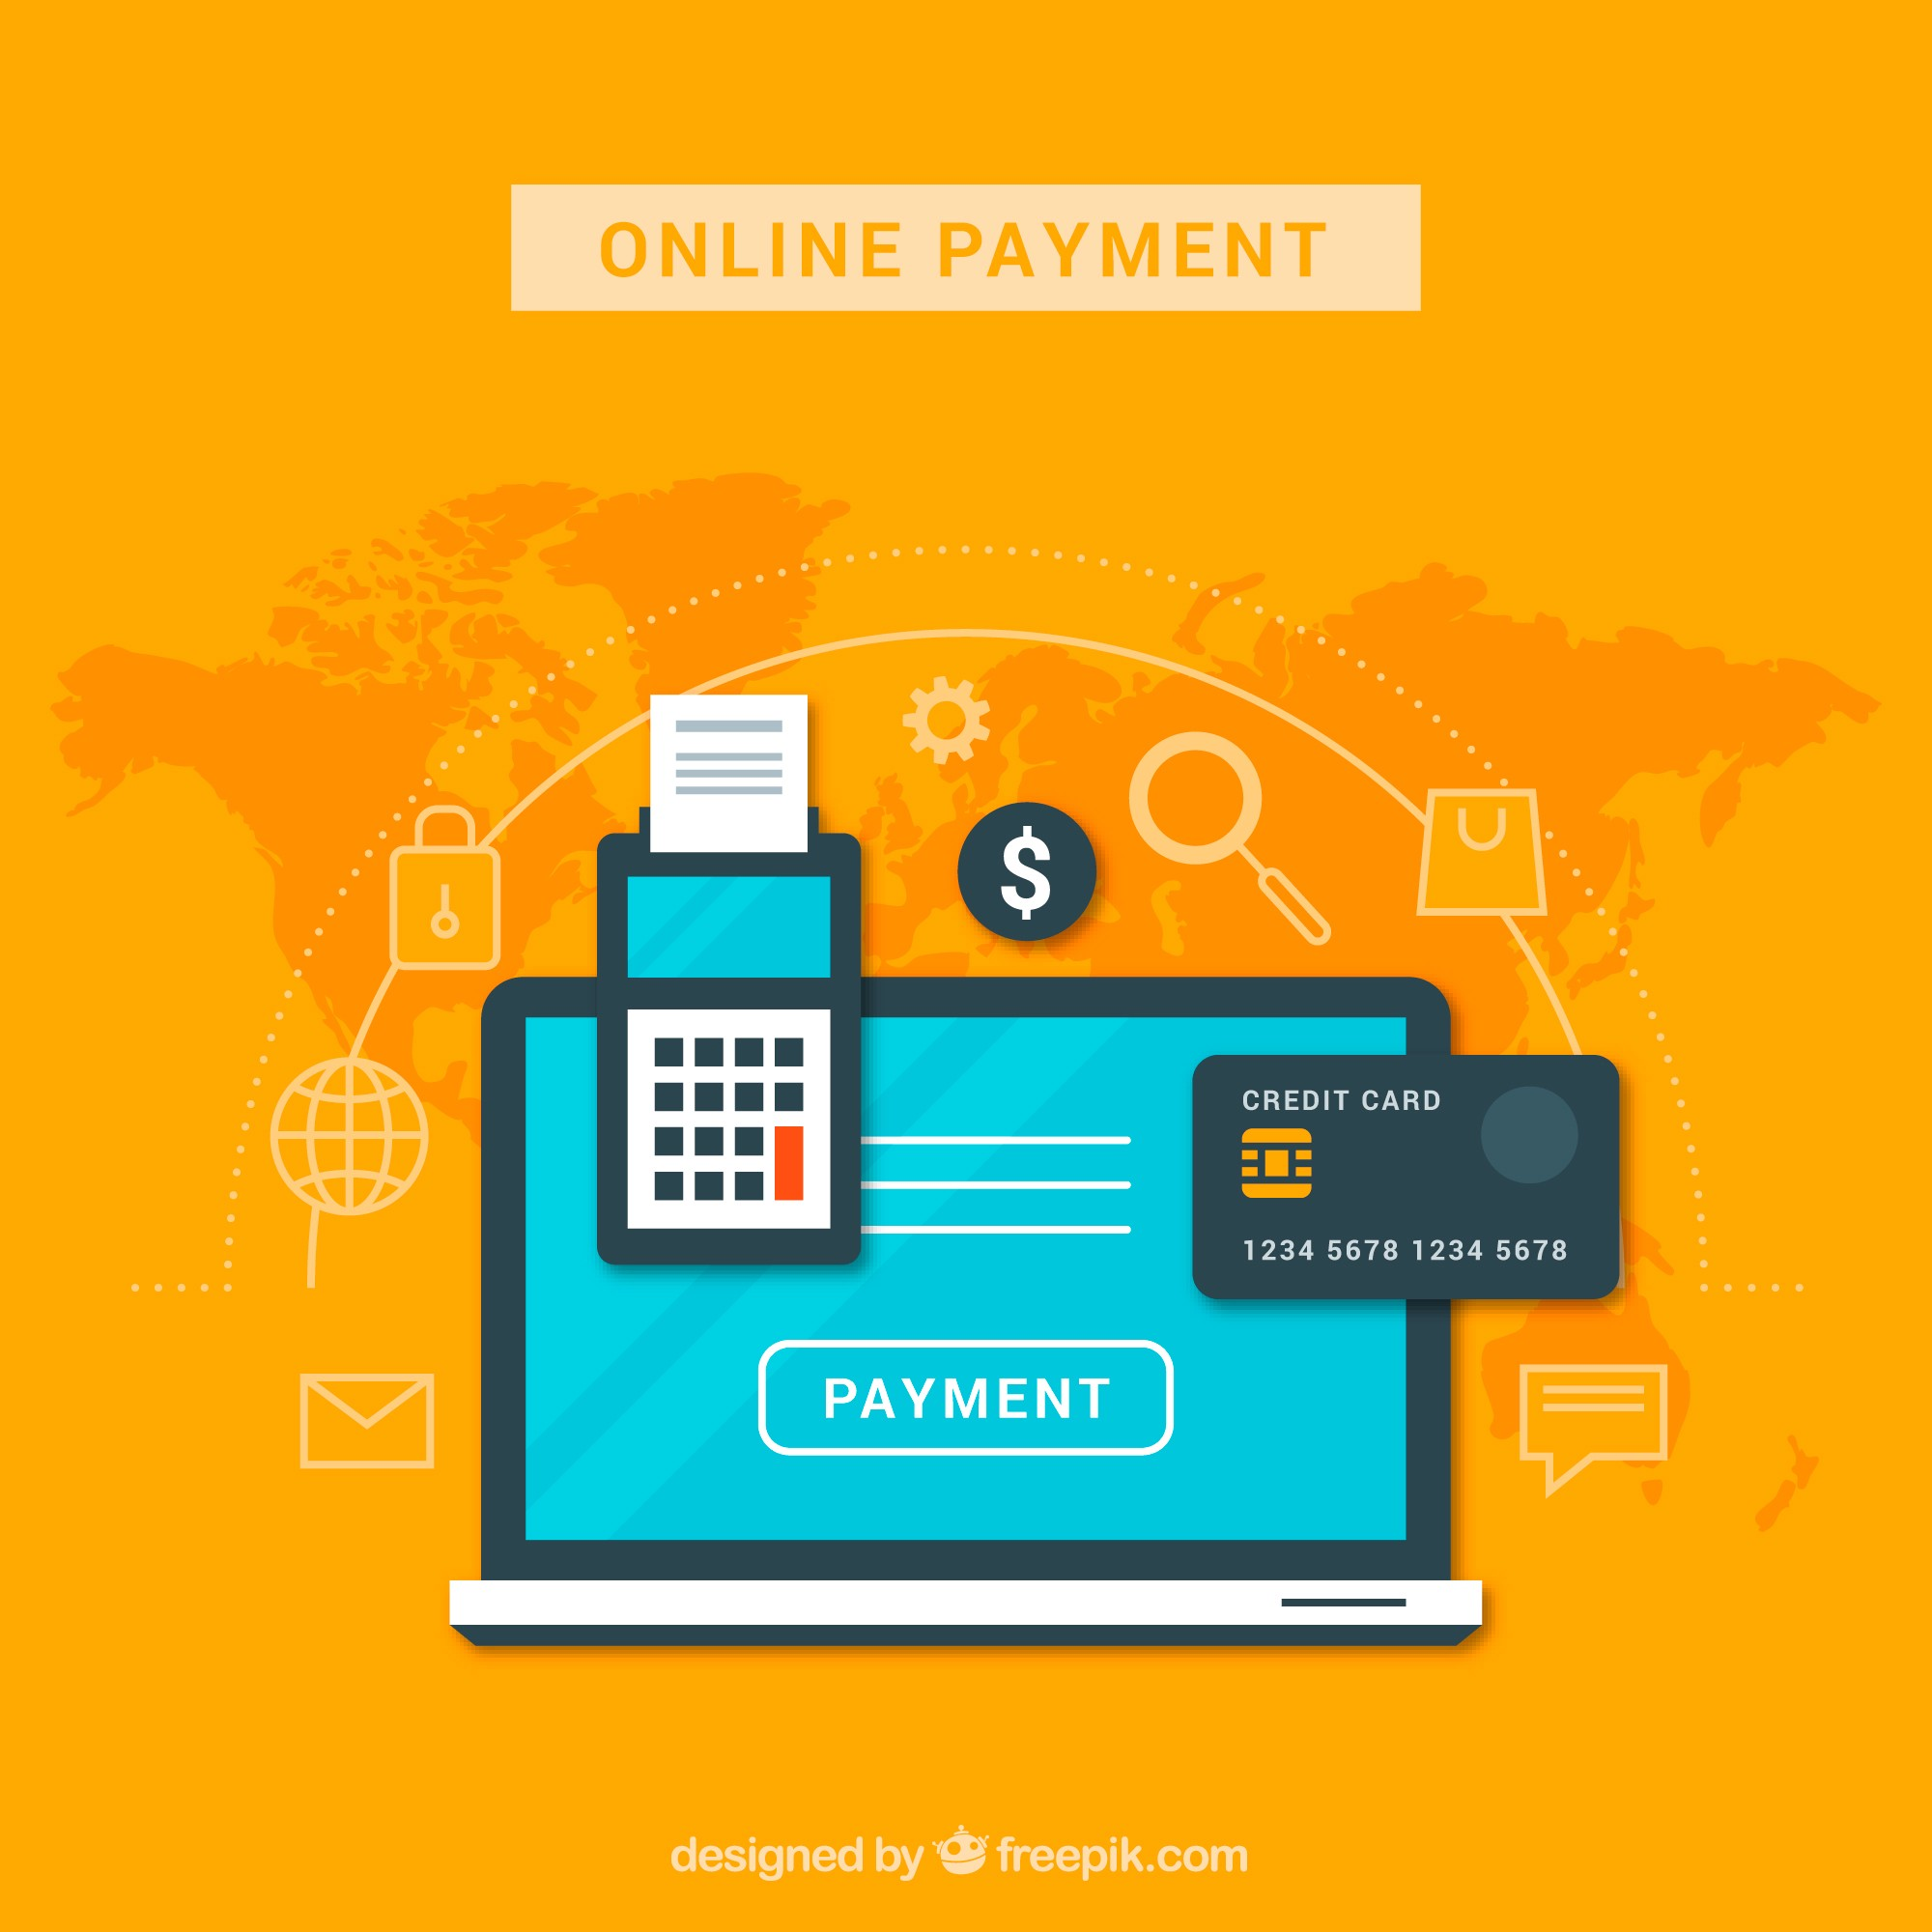 Payment Gateway Integration in Android & Web - Jaya Krishna